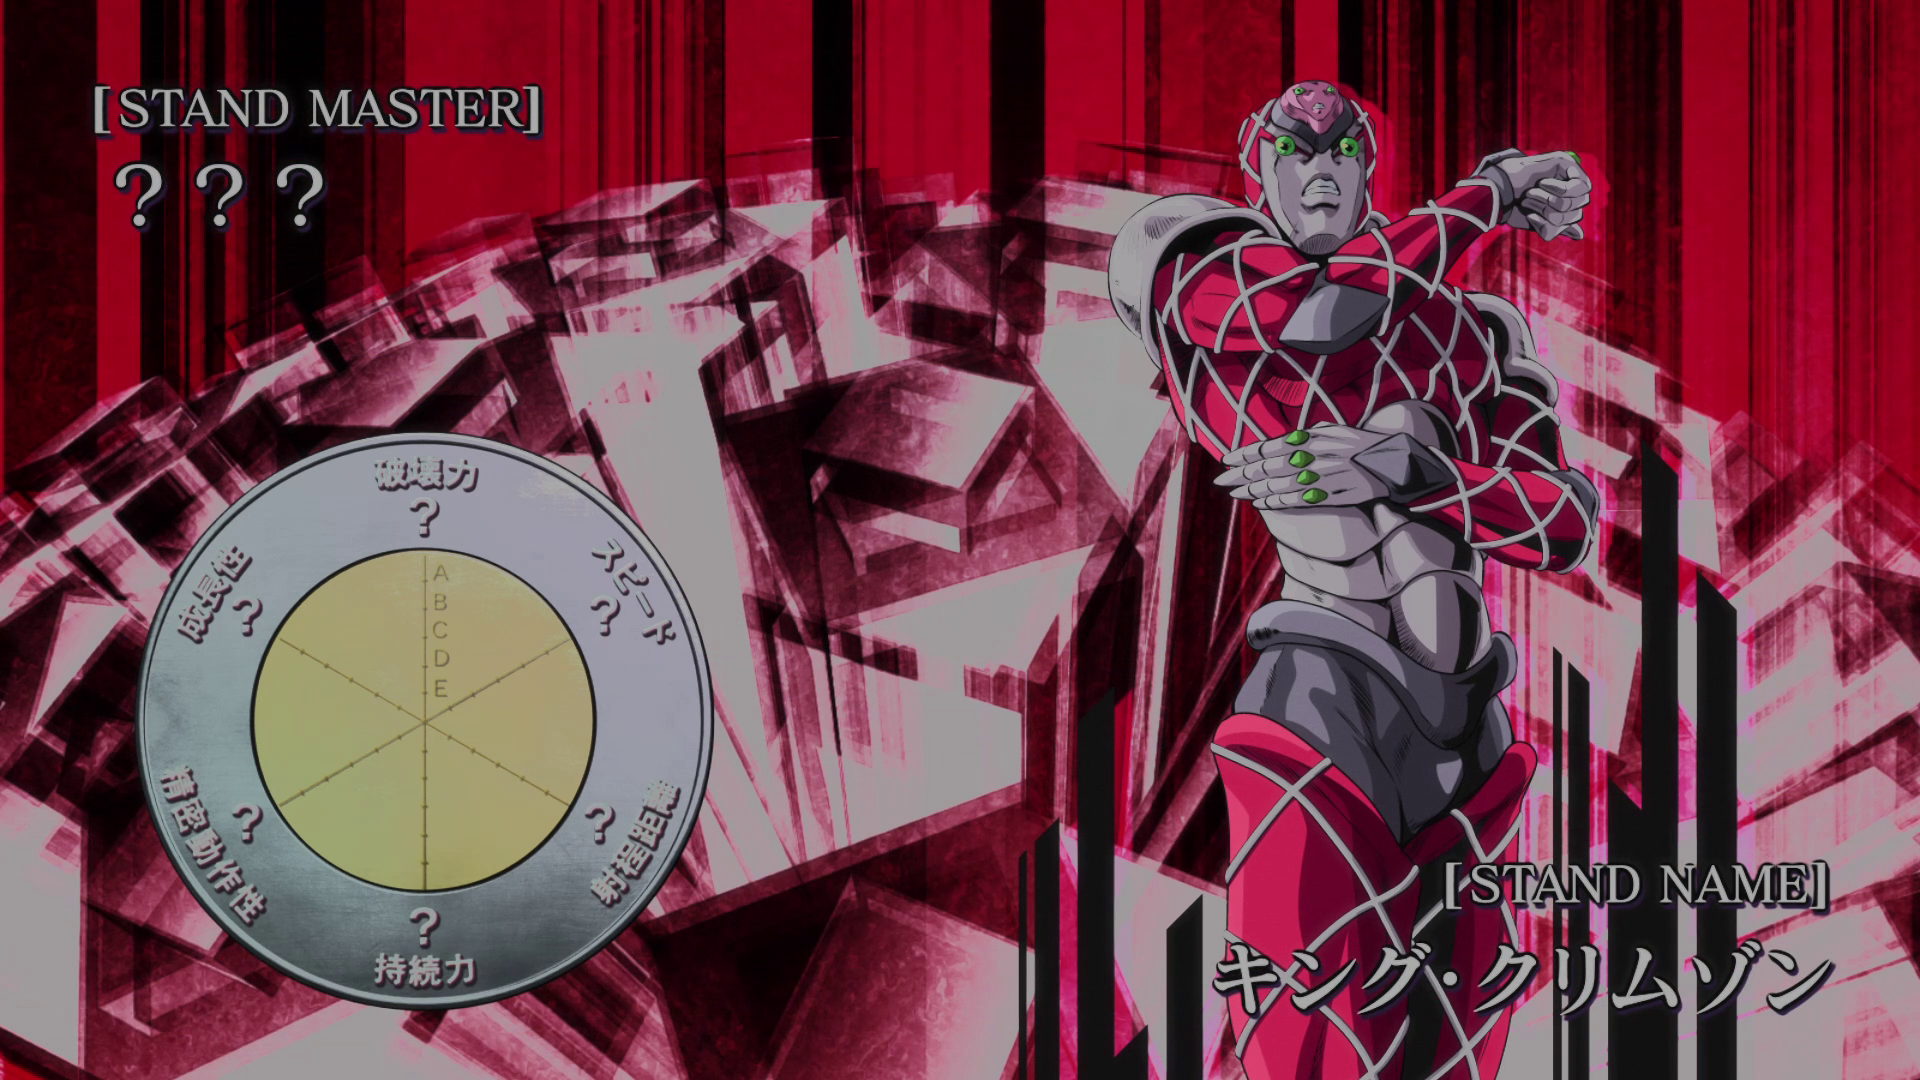 So am I the only one hoping that King Crimson gets the rest of its stats filled out??